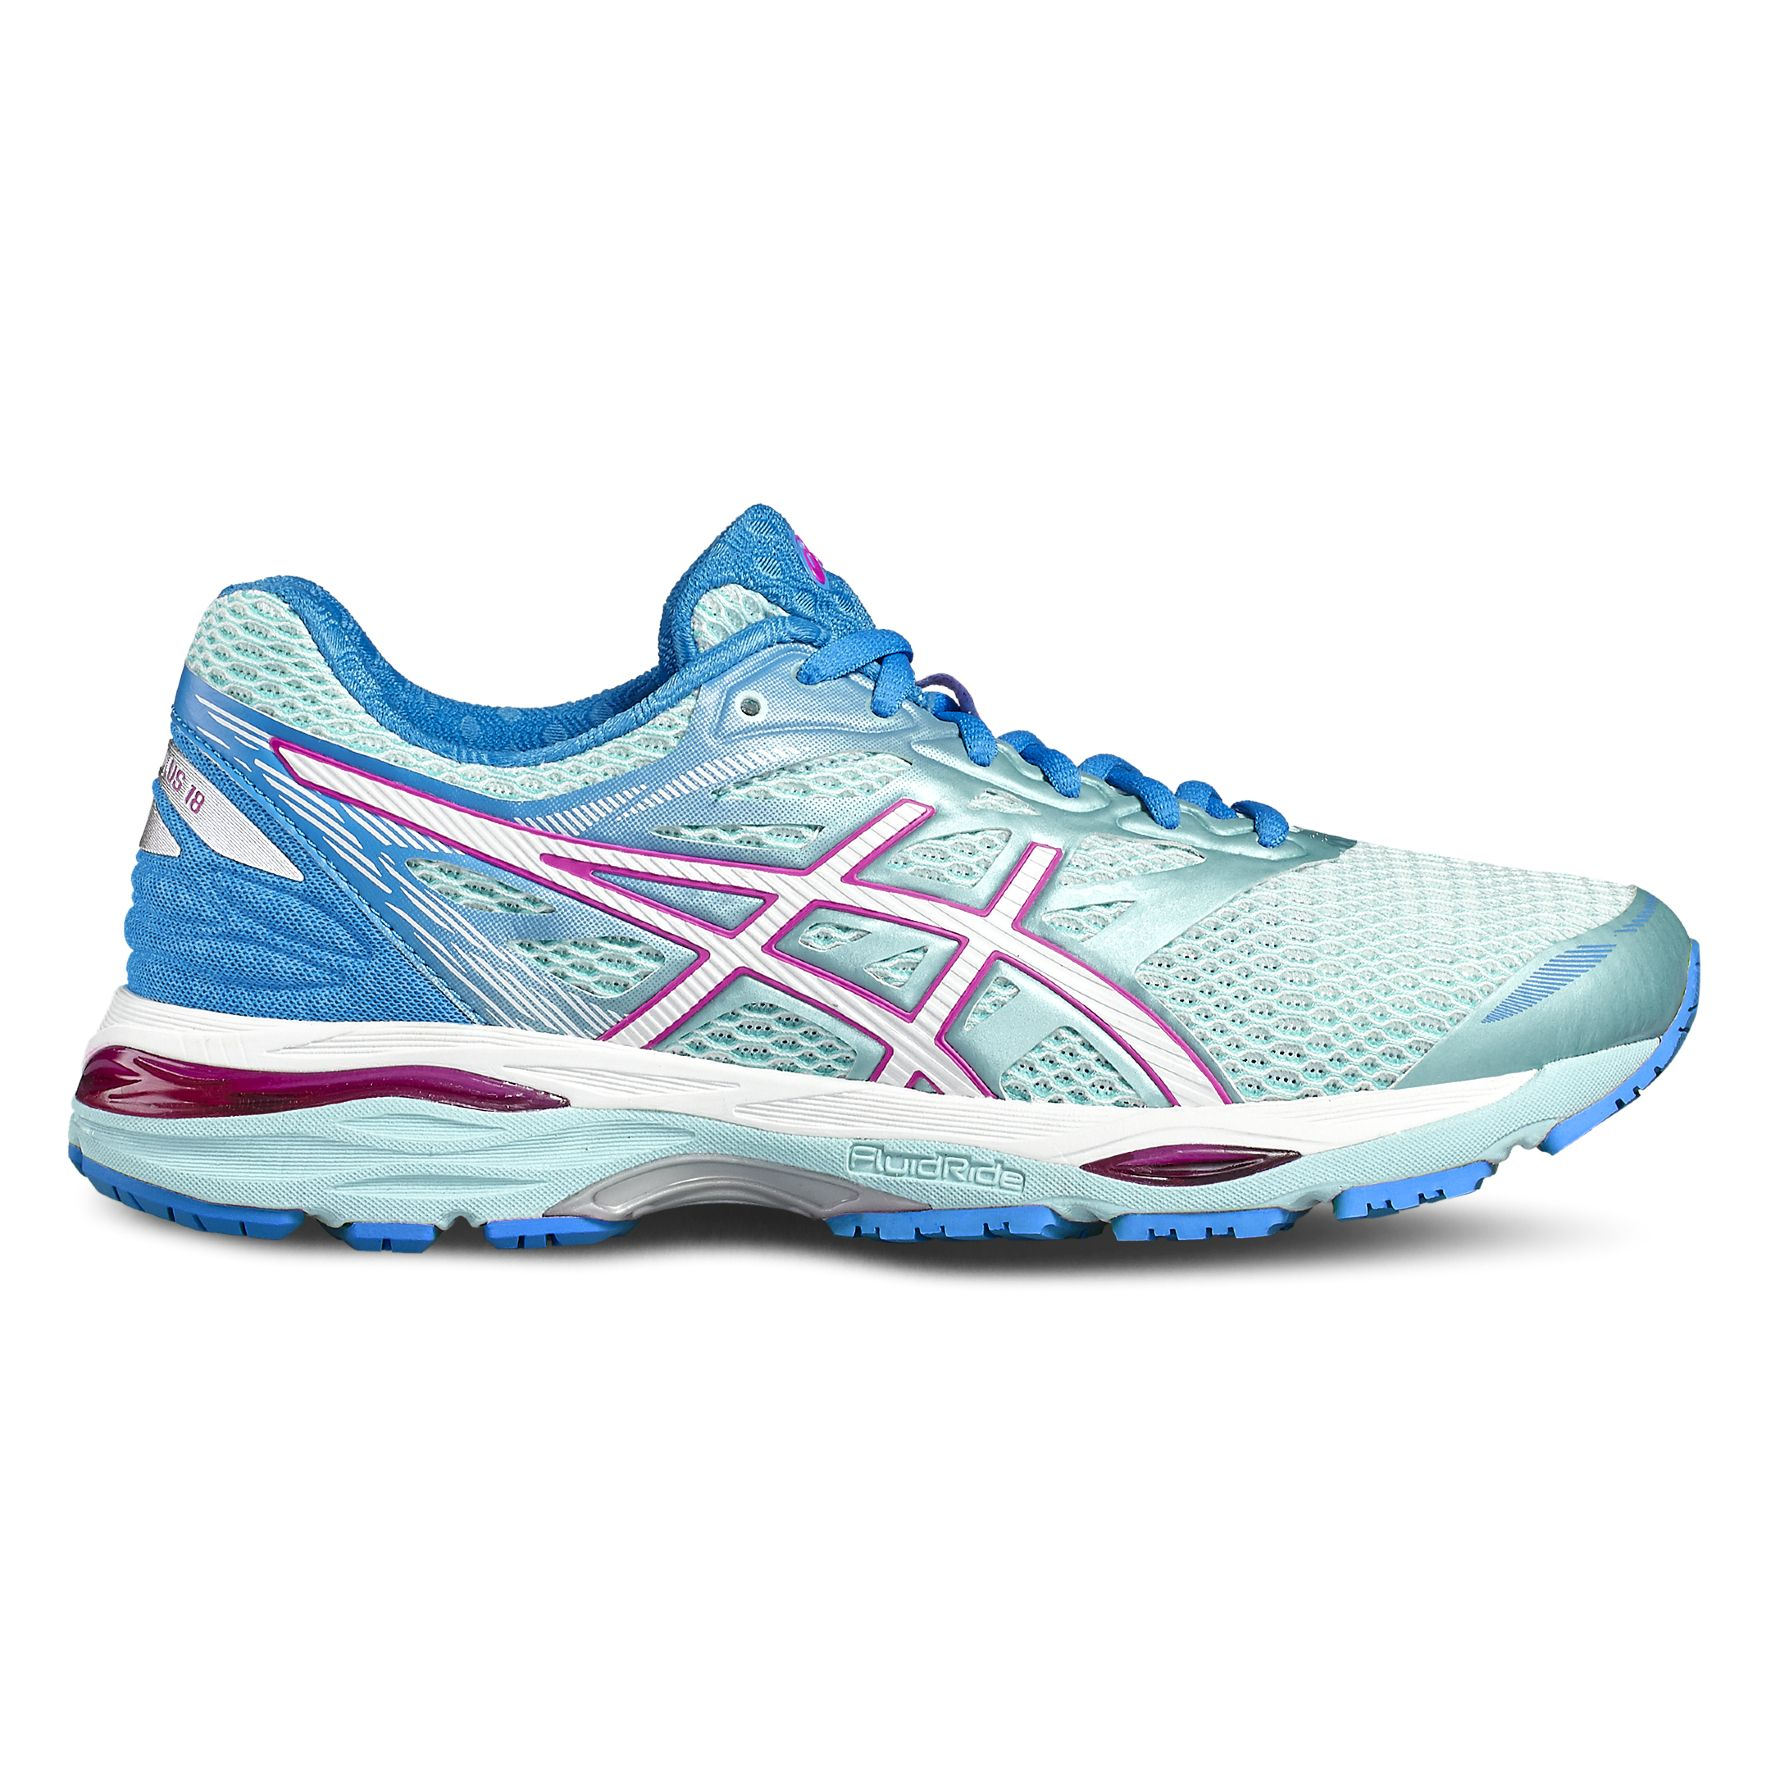 Asics Gel Kayano  Running Shoes Review